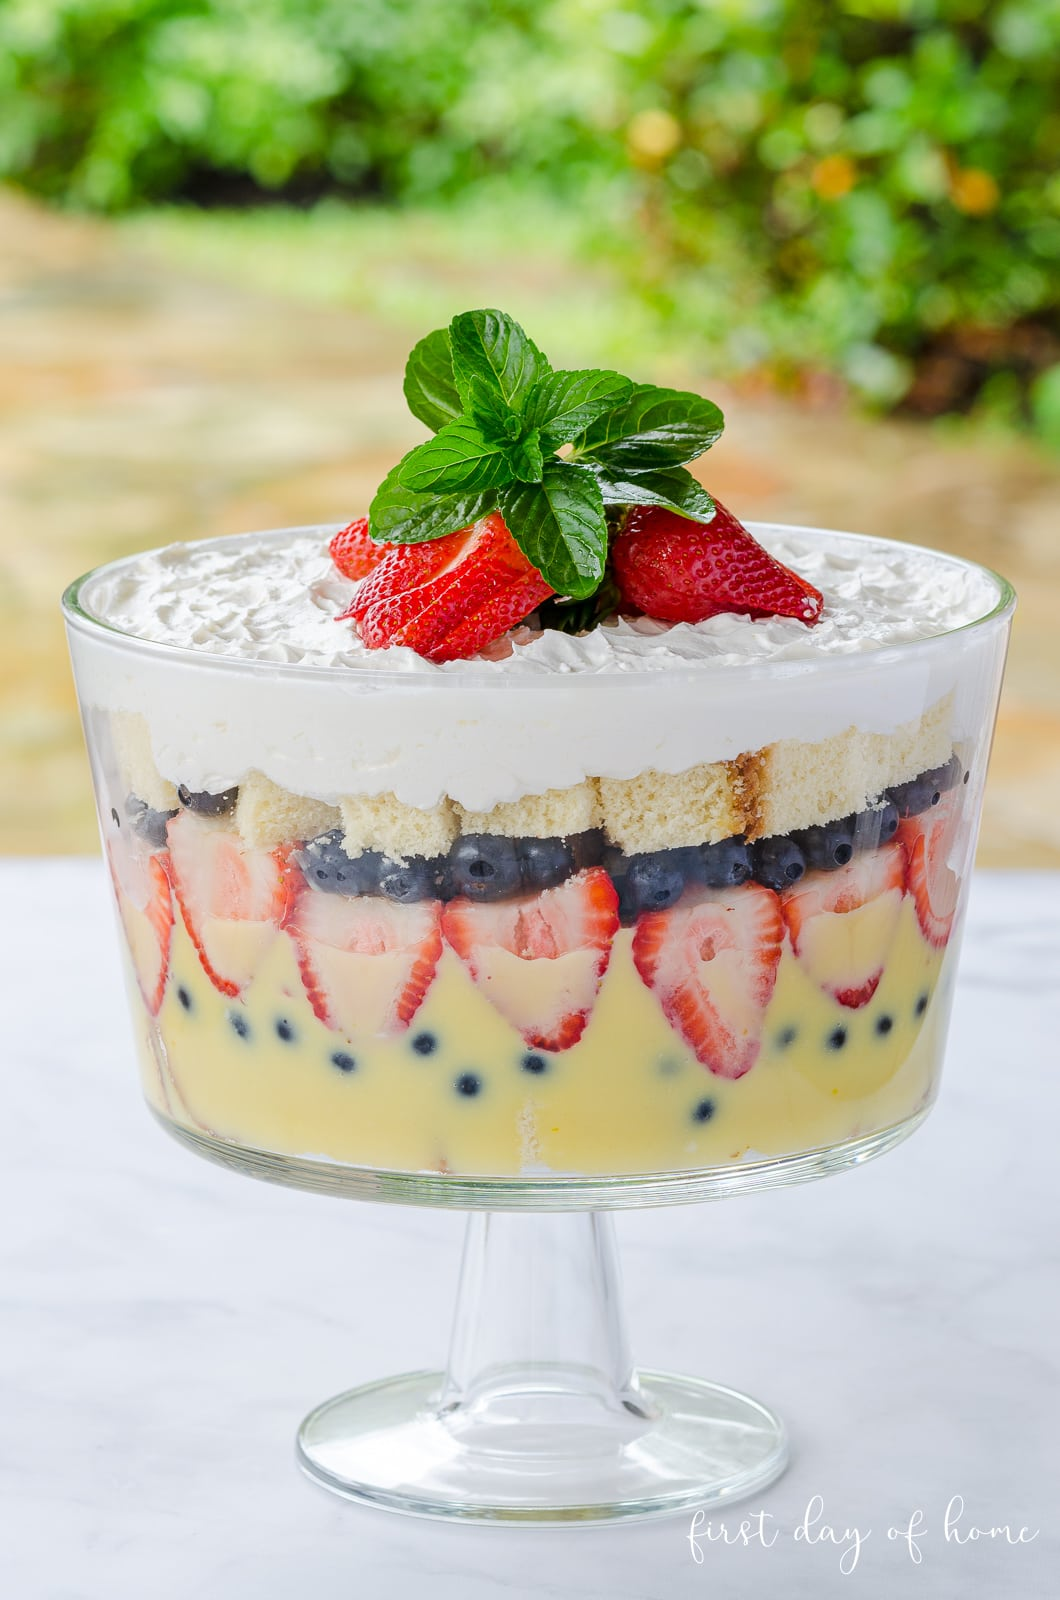 Strawberry trifle with pudding , pound cake, strawberries, blueberries and whipped cream